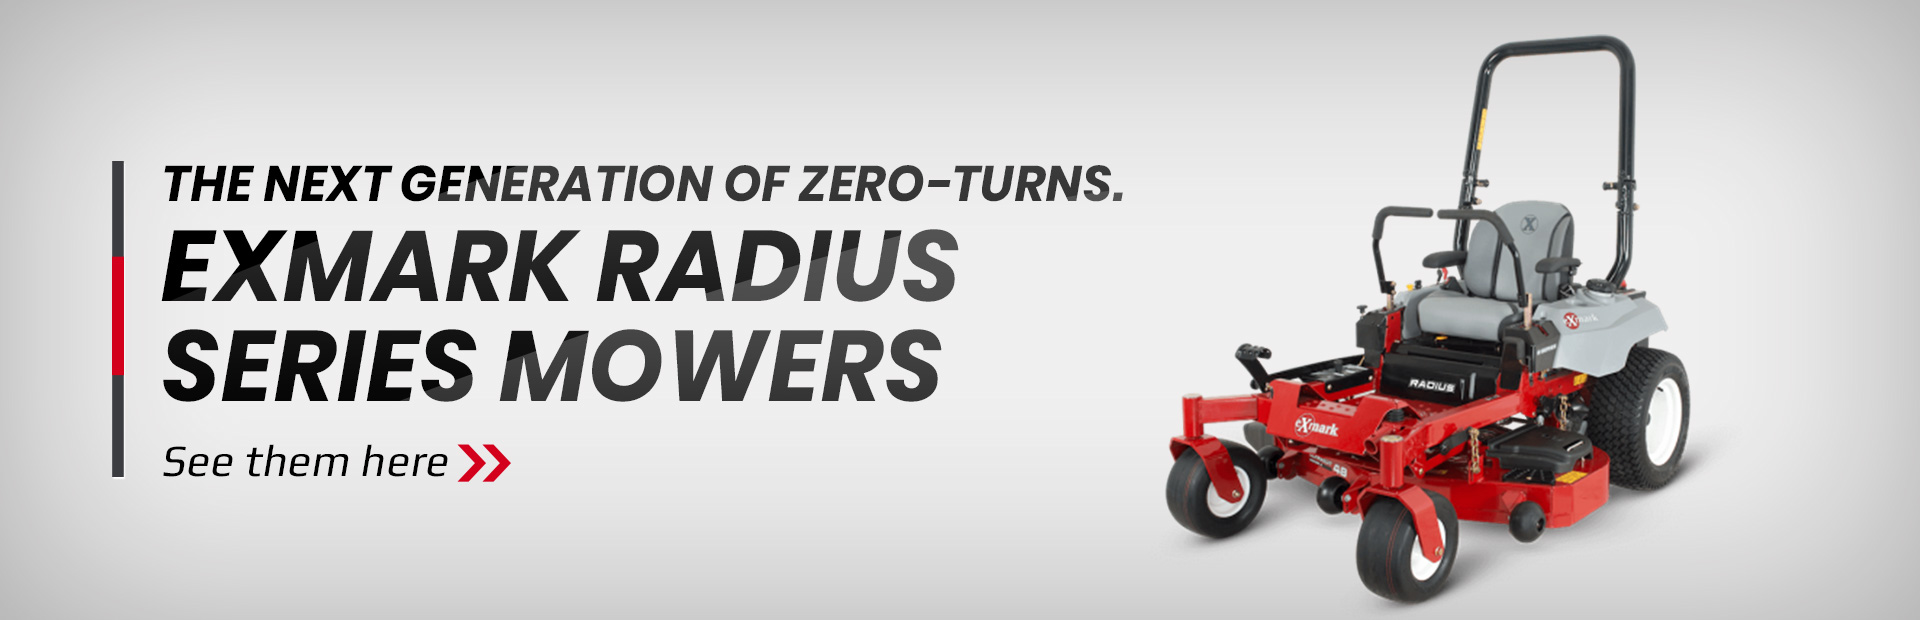 ExMark Radius Series mowers: Click here to see the models.